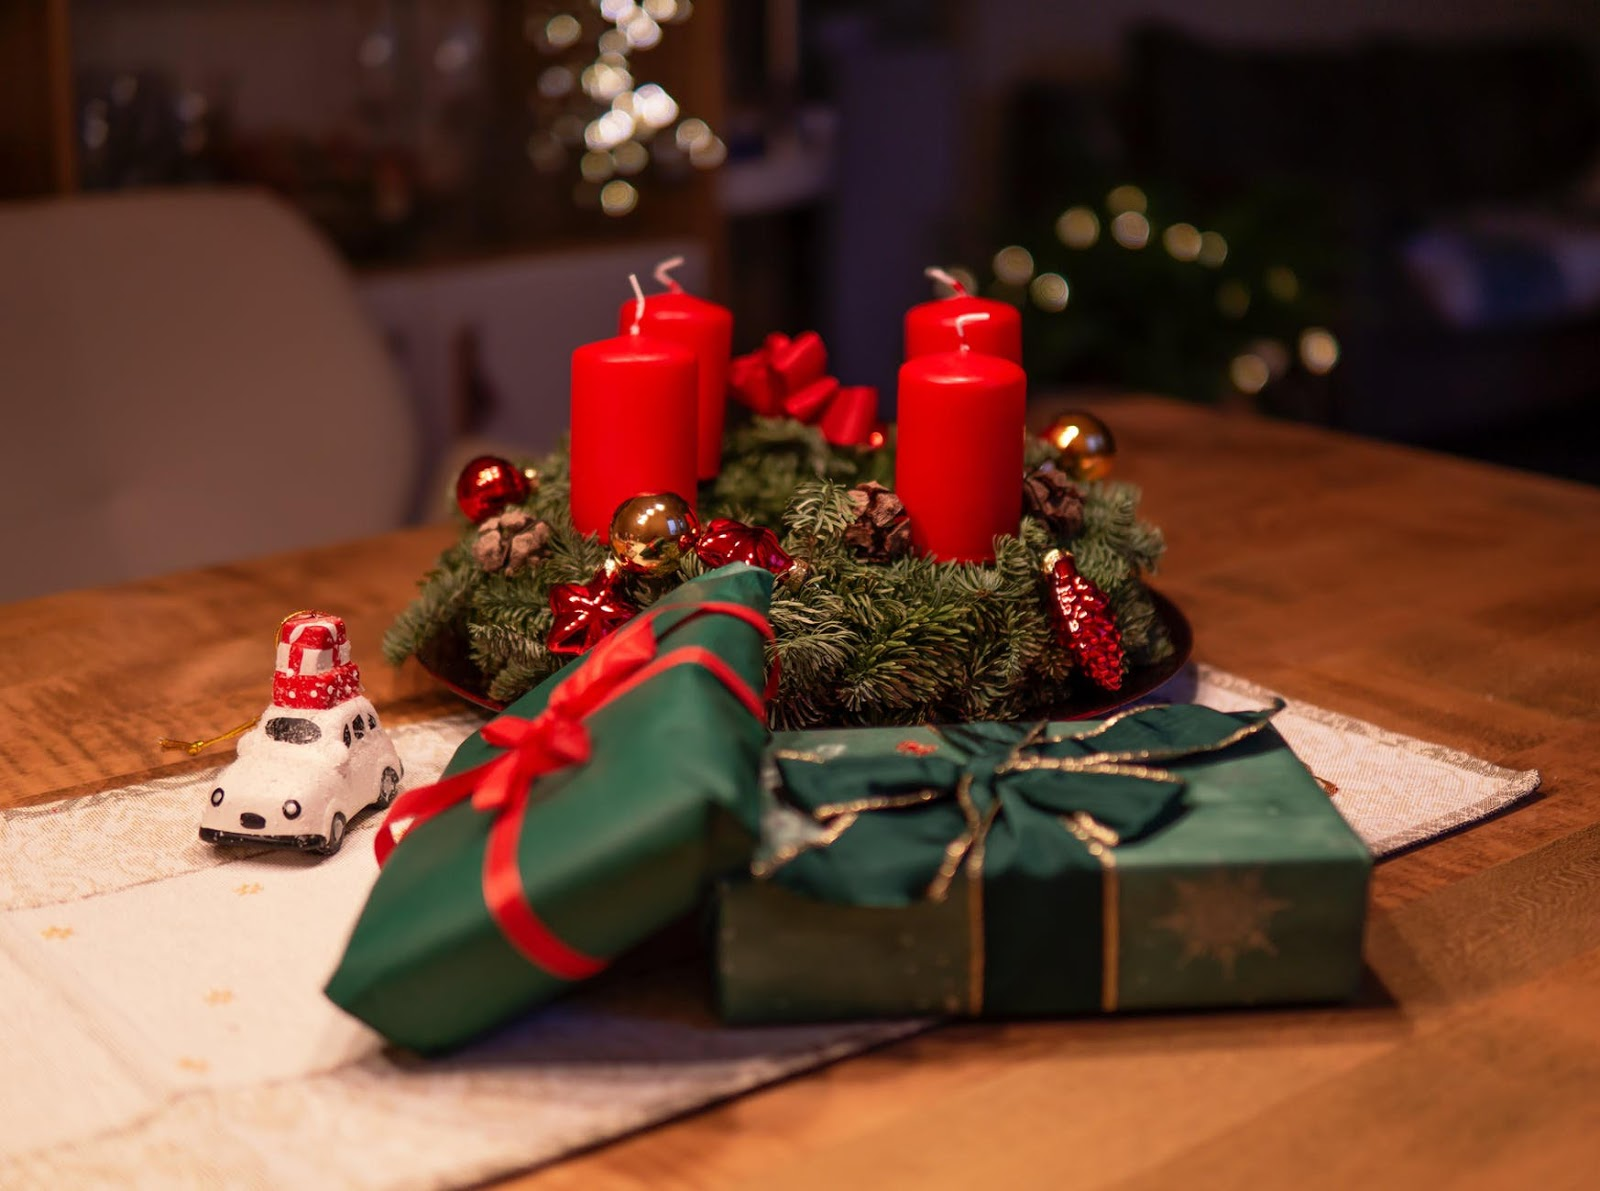 Ultimate Christmas Gift Ideas that you should Consider this Holiday Season